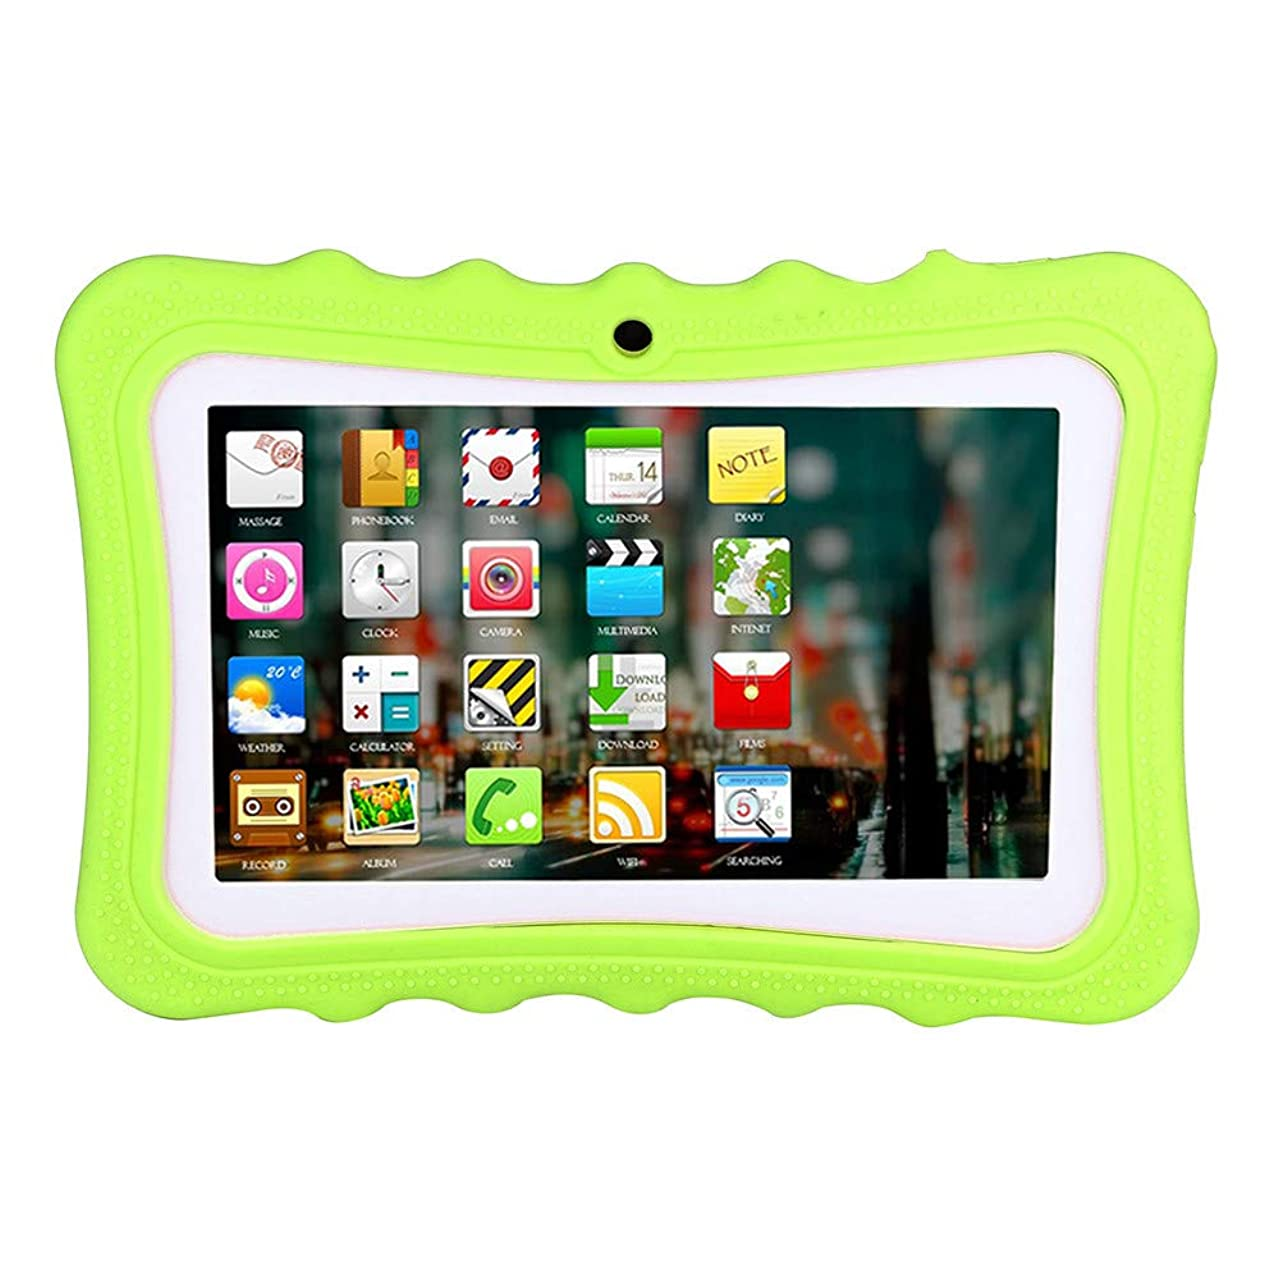 Sayolala Kids Tablet Android Quad Core 7 inch Tablet for Kids Edition Tablet with Wireless WiFi Photo Learning Home Camera Games IPS Safety Eye Protection Screen 1GB 8GB Storage (7 Inch, Green)